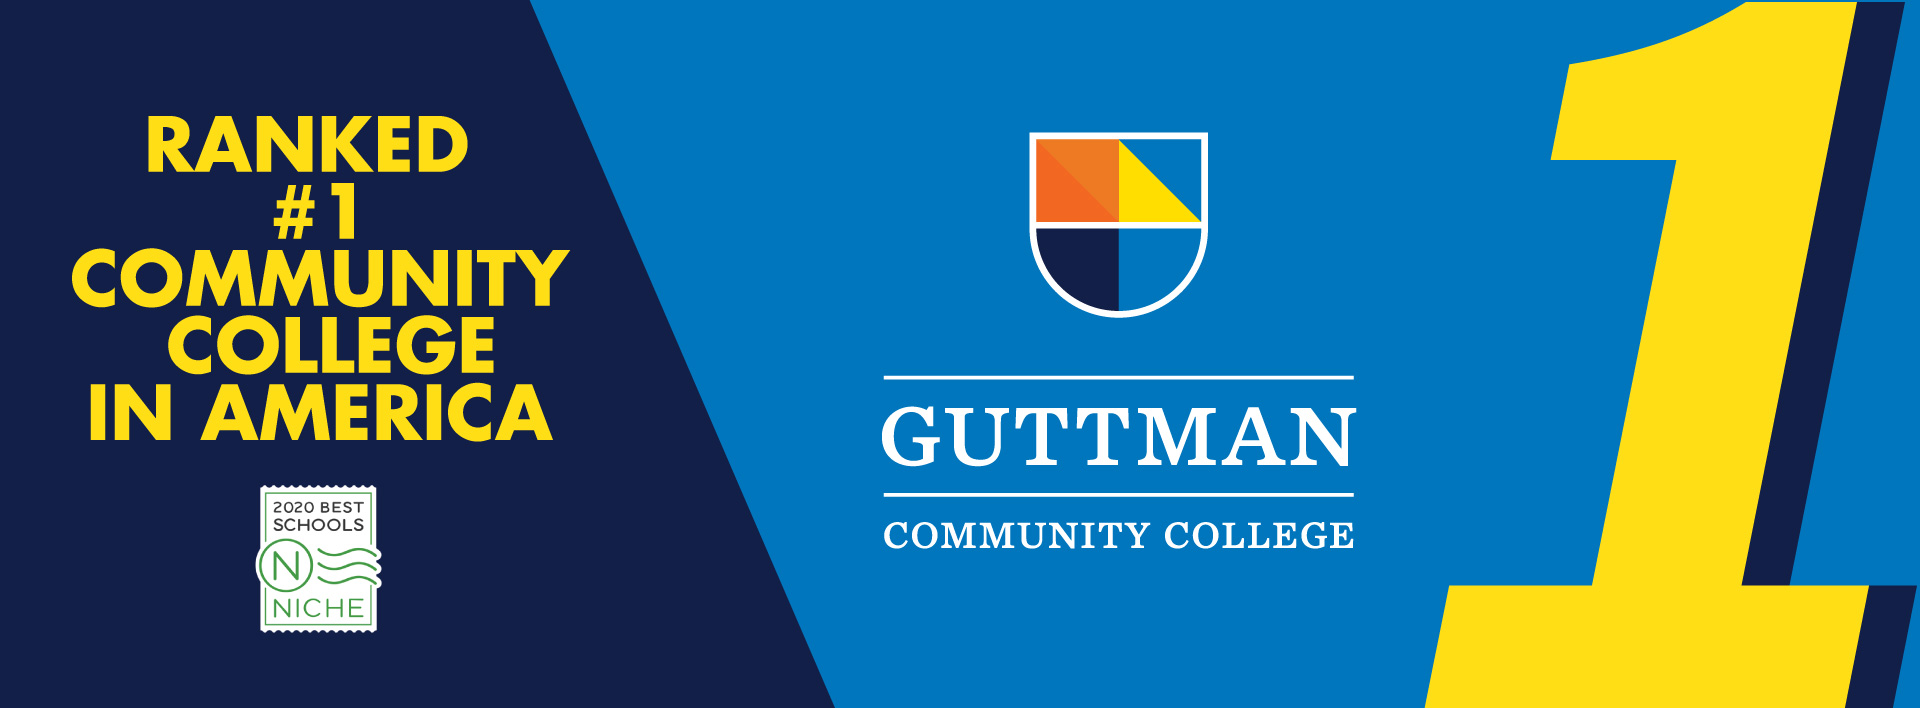 Guttman Community College ranked #1 Community College in America